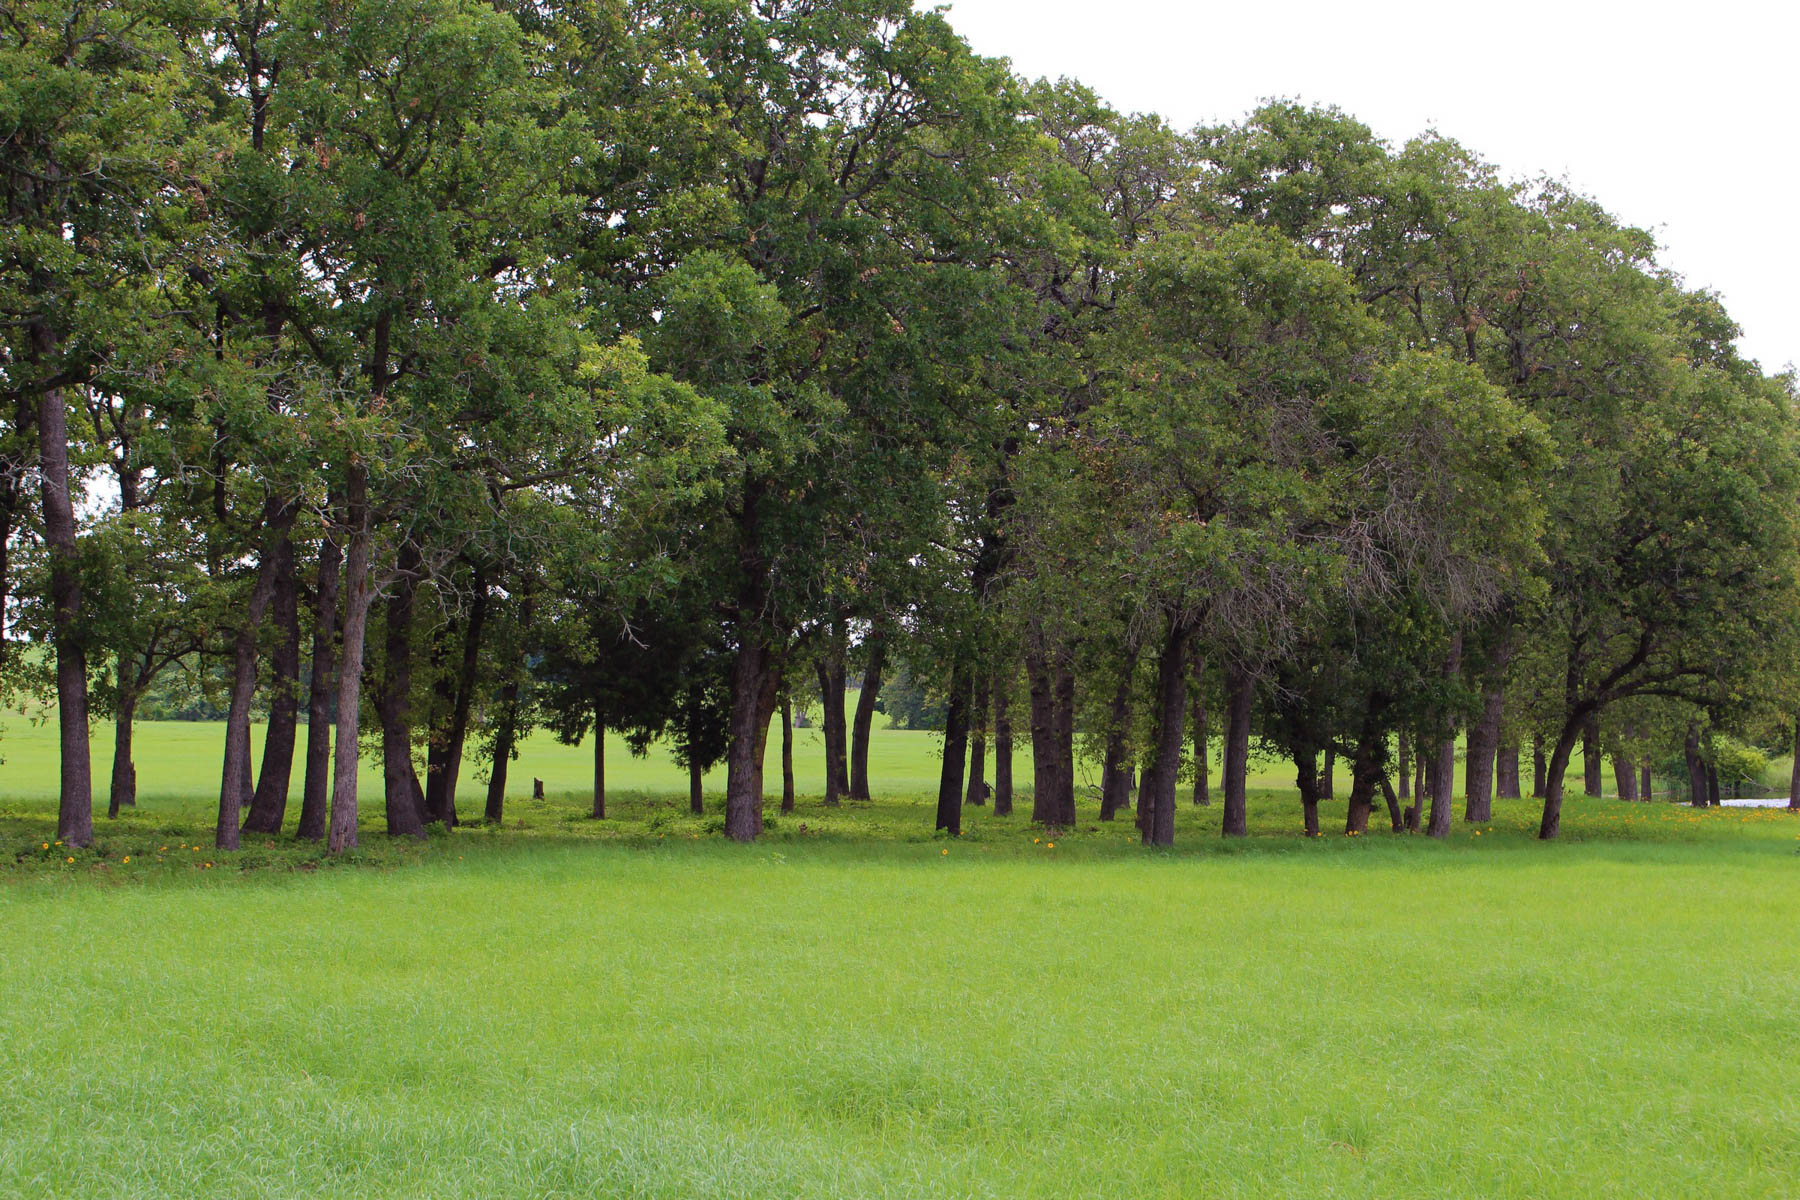 Additional photo for property listing at 272± Acres Bastrop Co. - Mid Springs Creek Ranch 272+/- Acres / Bastrop County Paige, Texas 78659 Estados Unidos